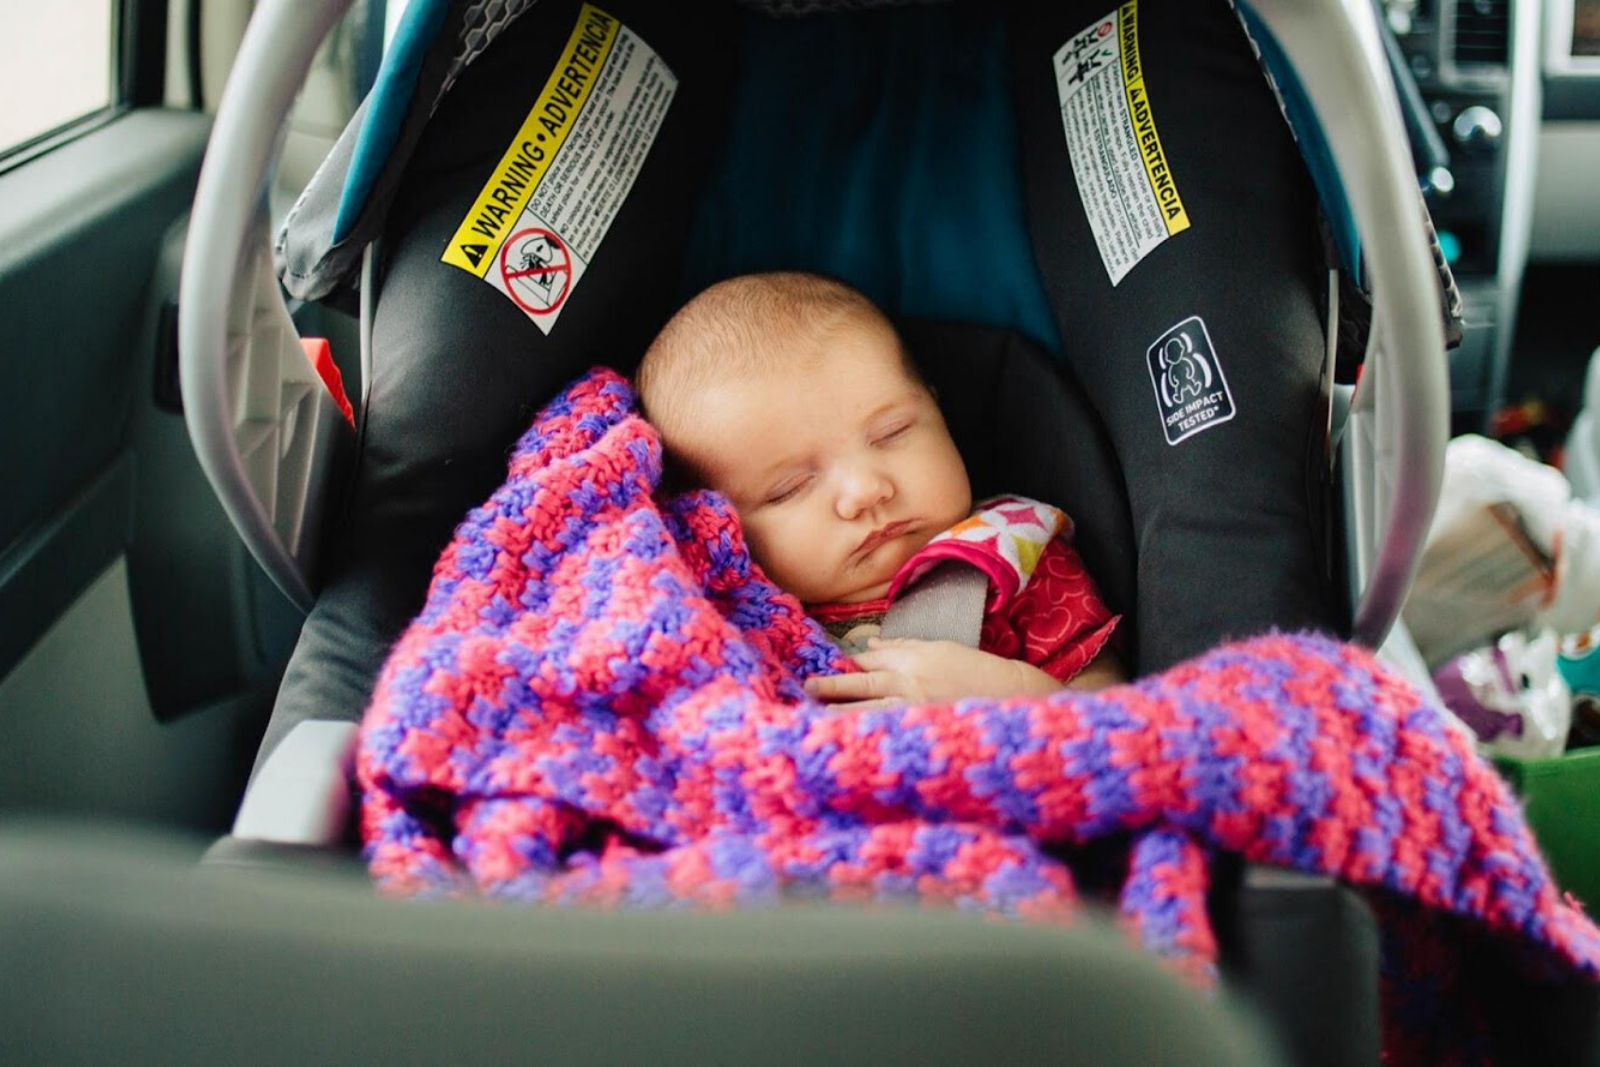 Baby in Car Seat | Your Guide On How To Choose The Safest Baby Car Seat